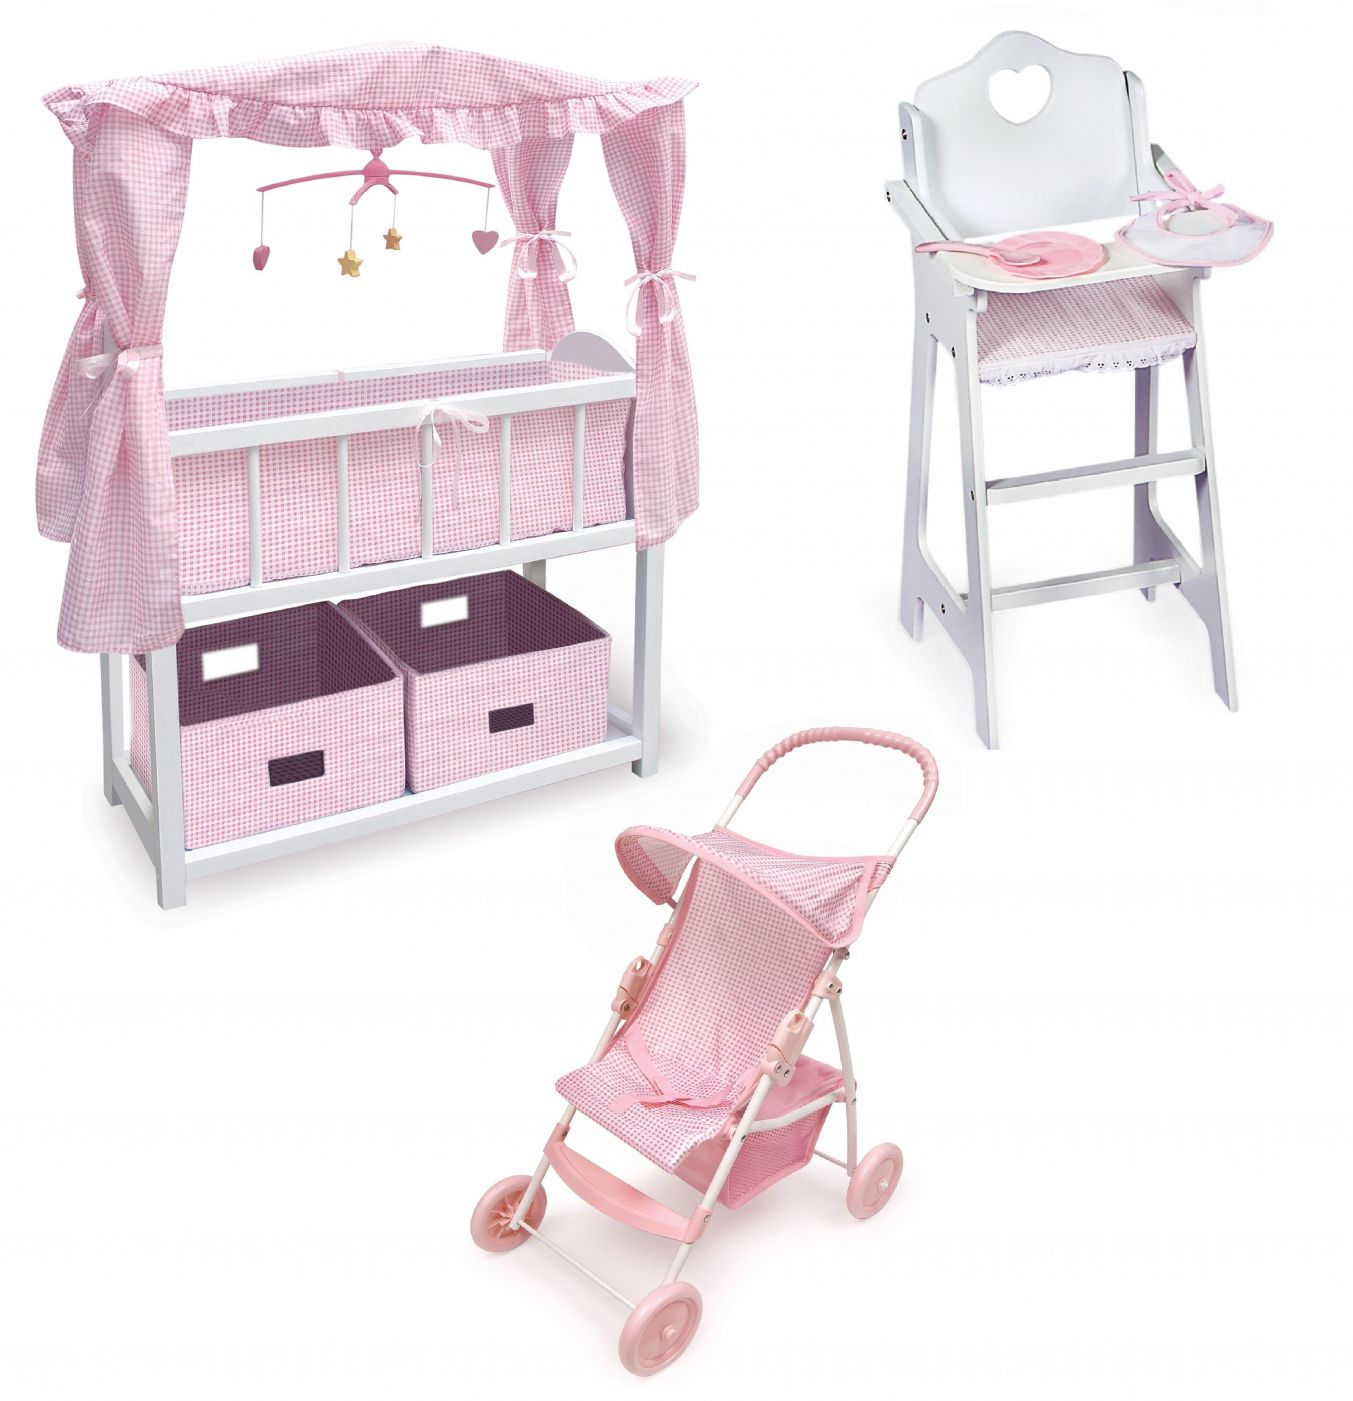 Baby Doll Accessories Furniture Interior Paint